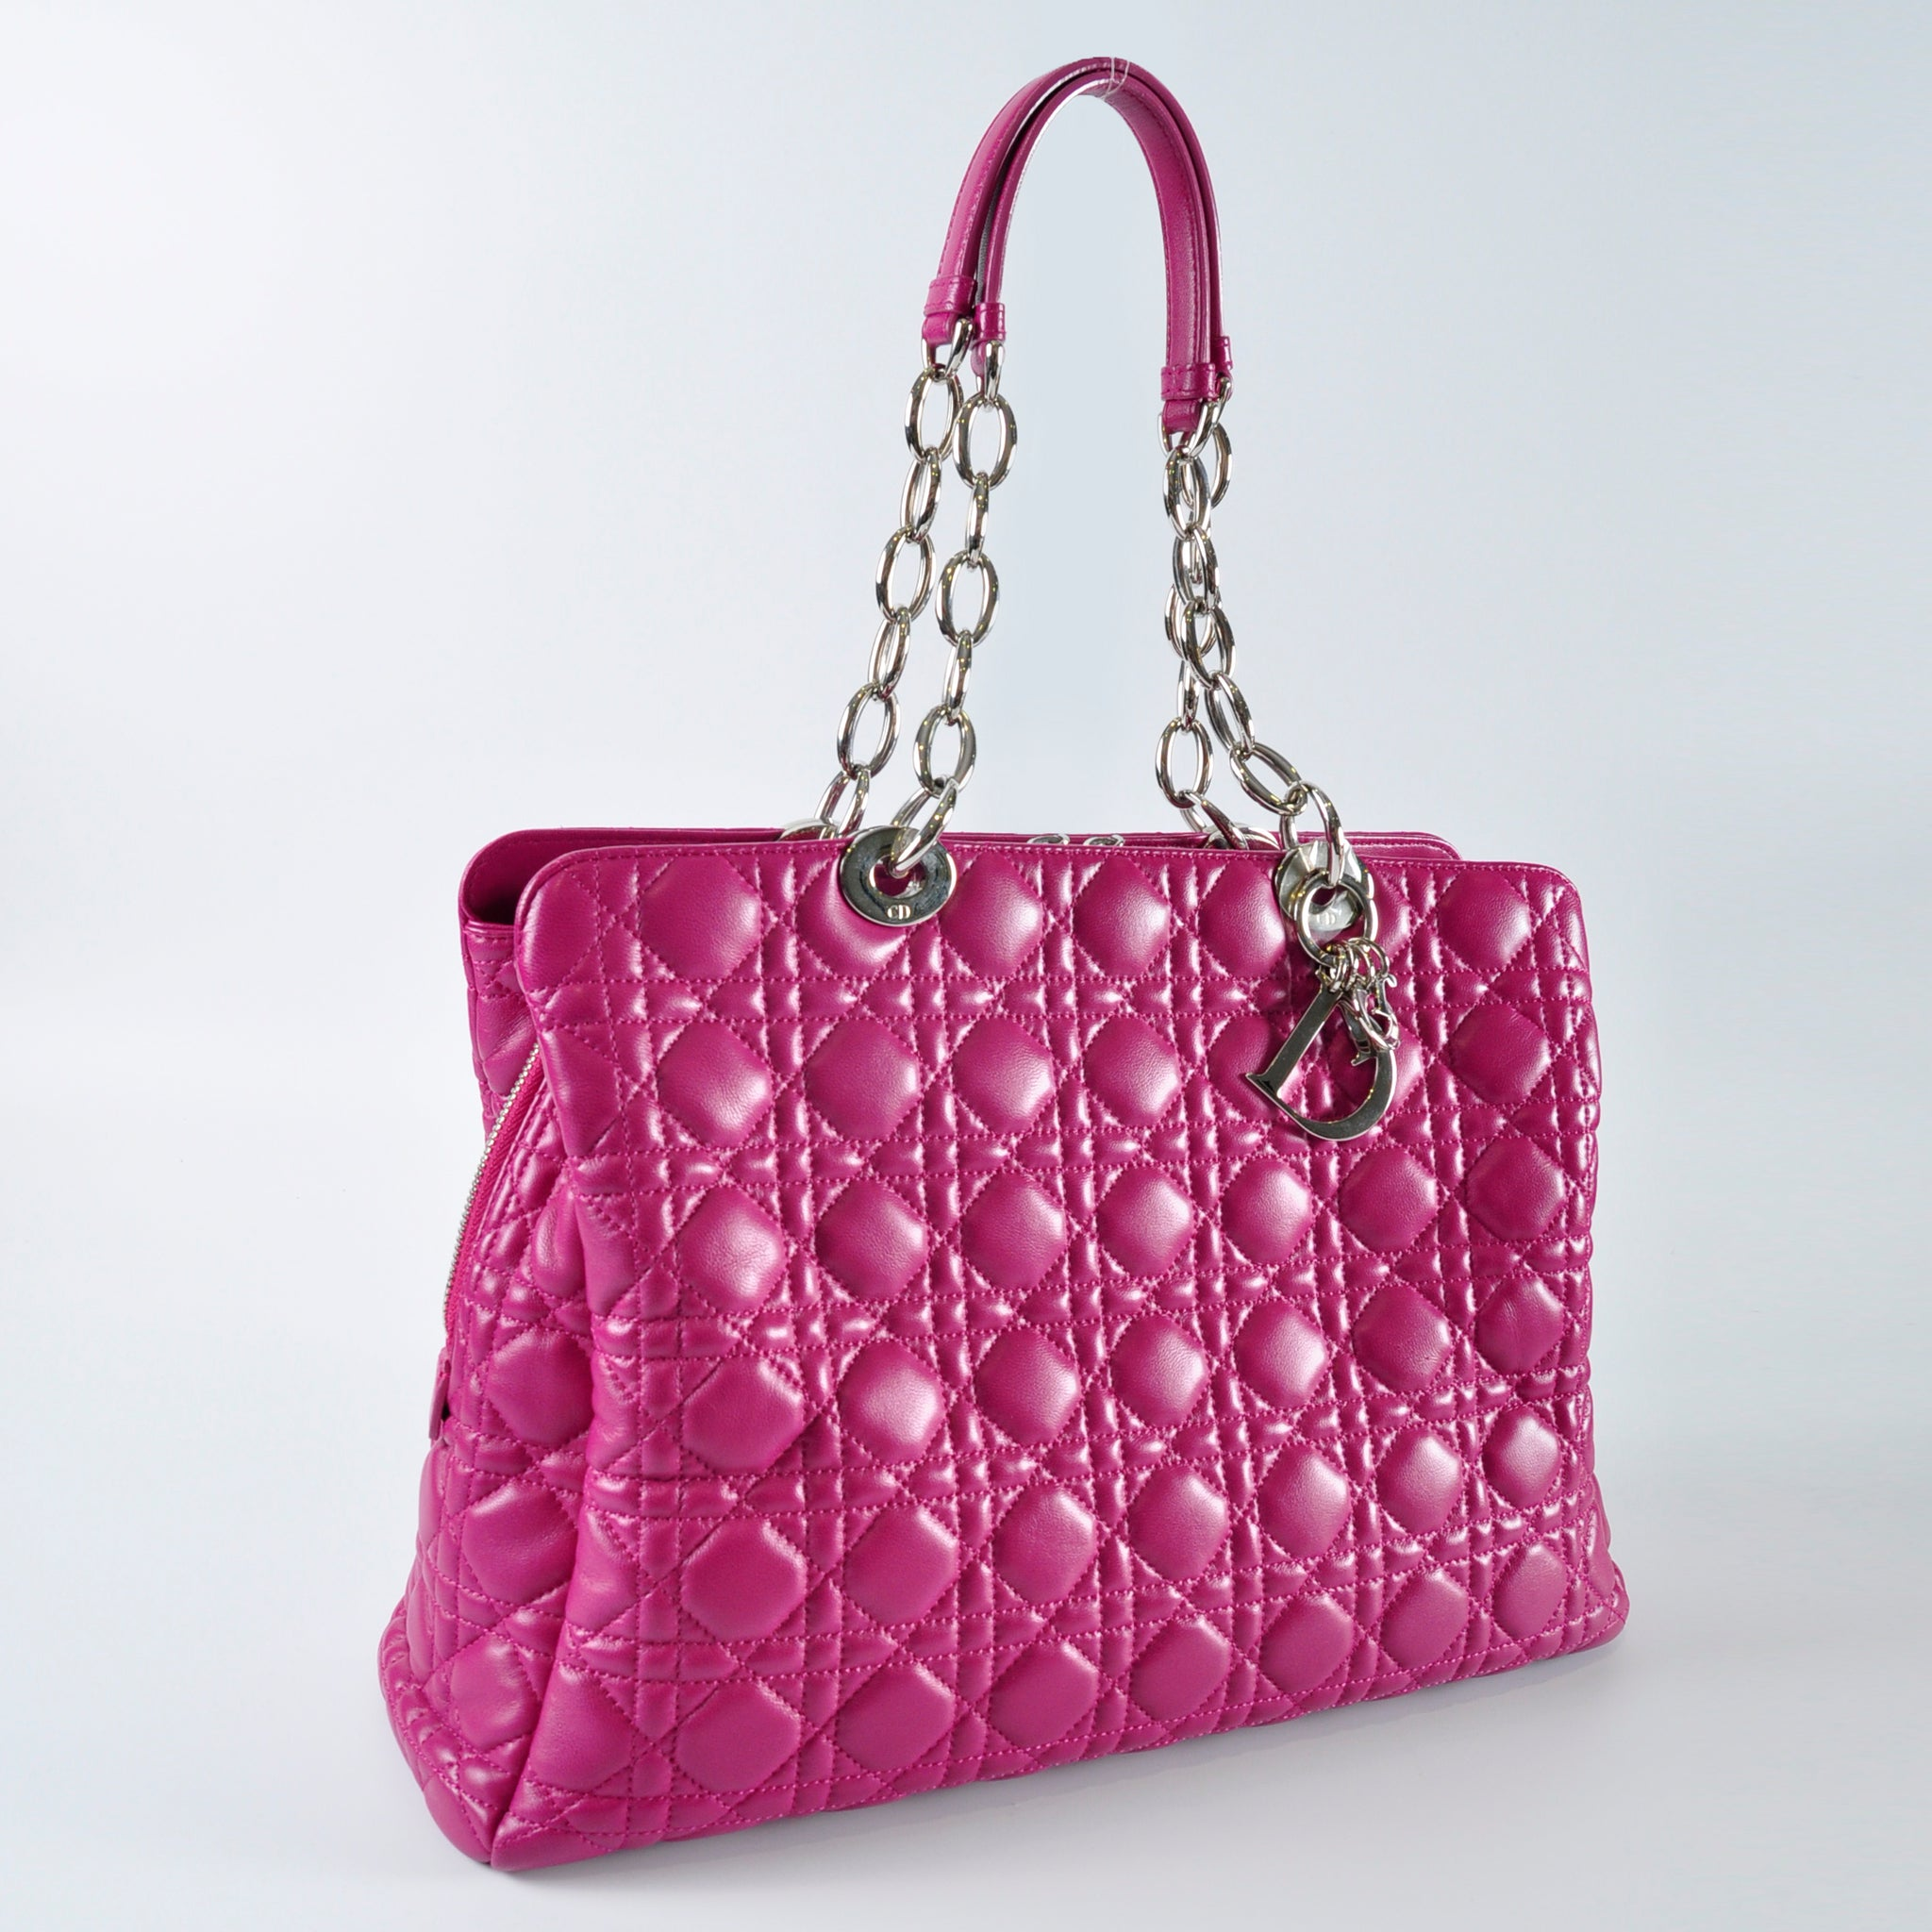 Christian Dior Purple SHW Cannage Lambskin Shopping Tote Bag